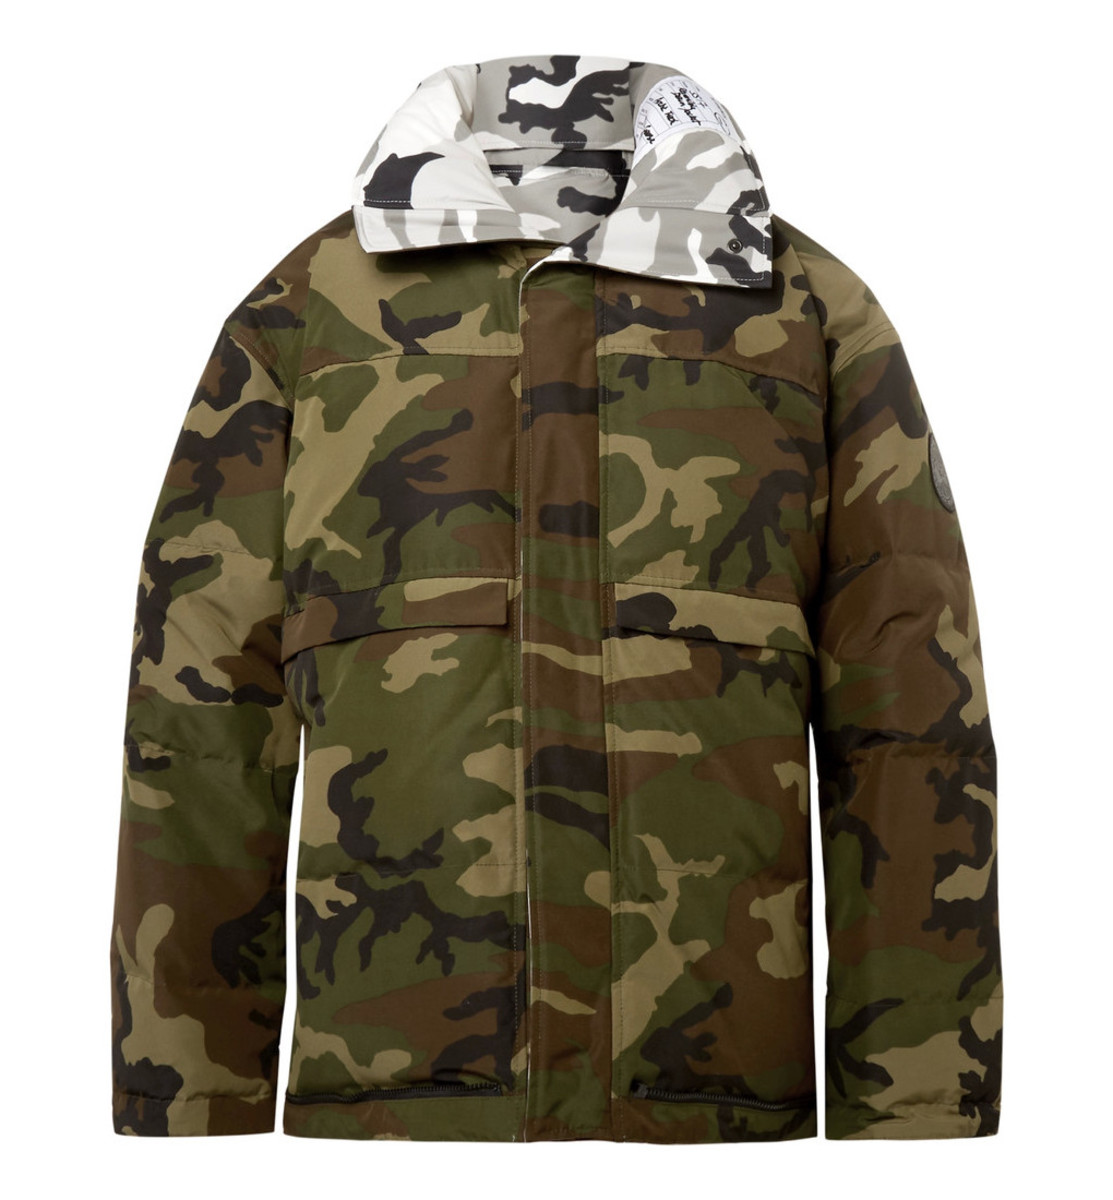 vetements-canada-goose-reversible-shell-down-jacket.jpg